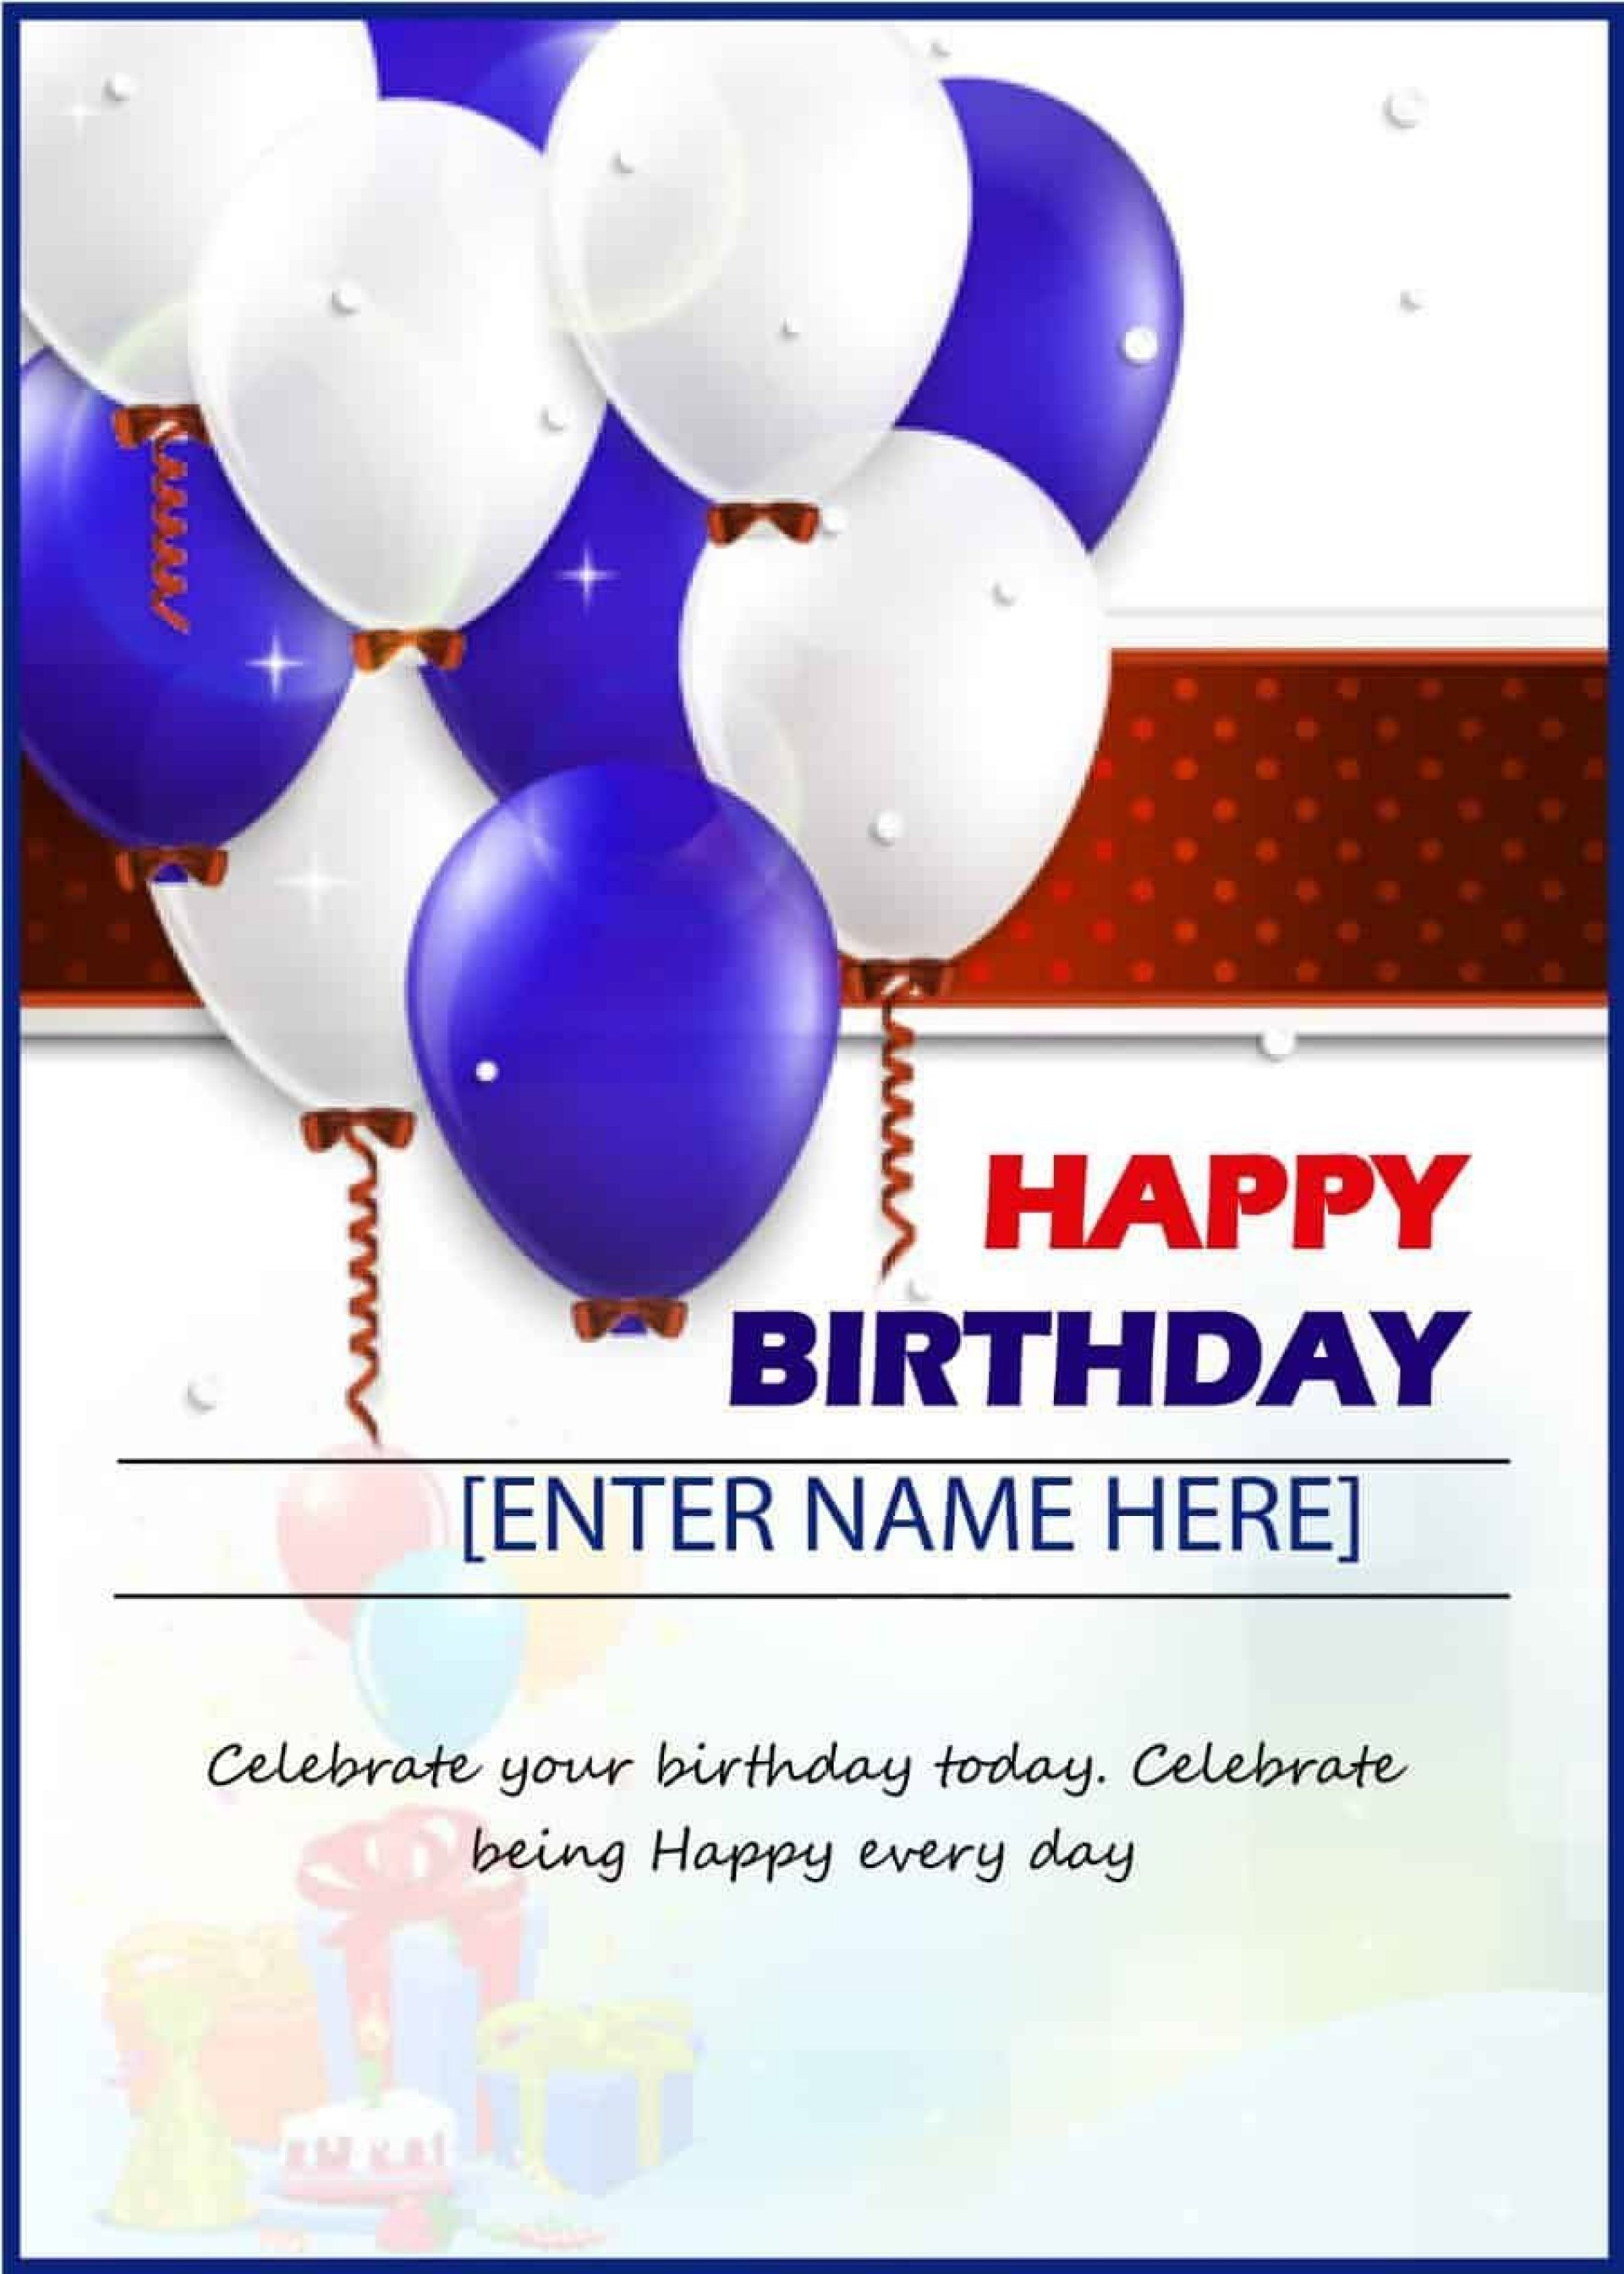 005 Unbelievable Birthday Card Template For Microsoft Word Concept  Free Greeting Layout1920